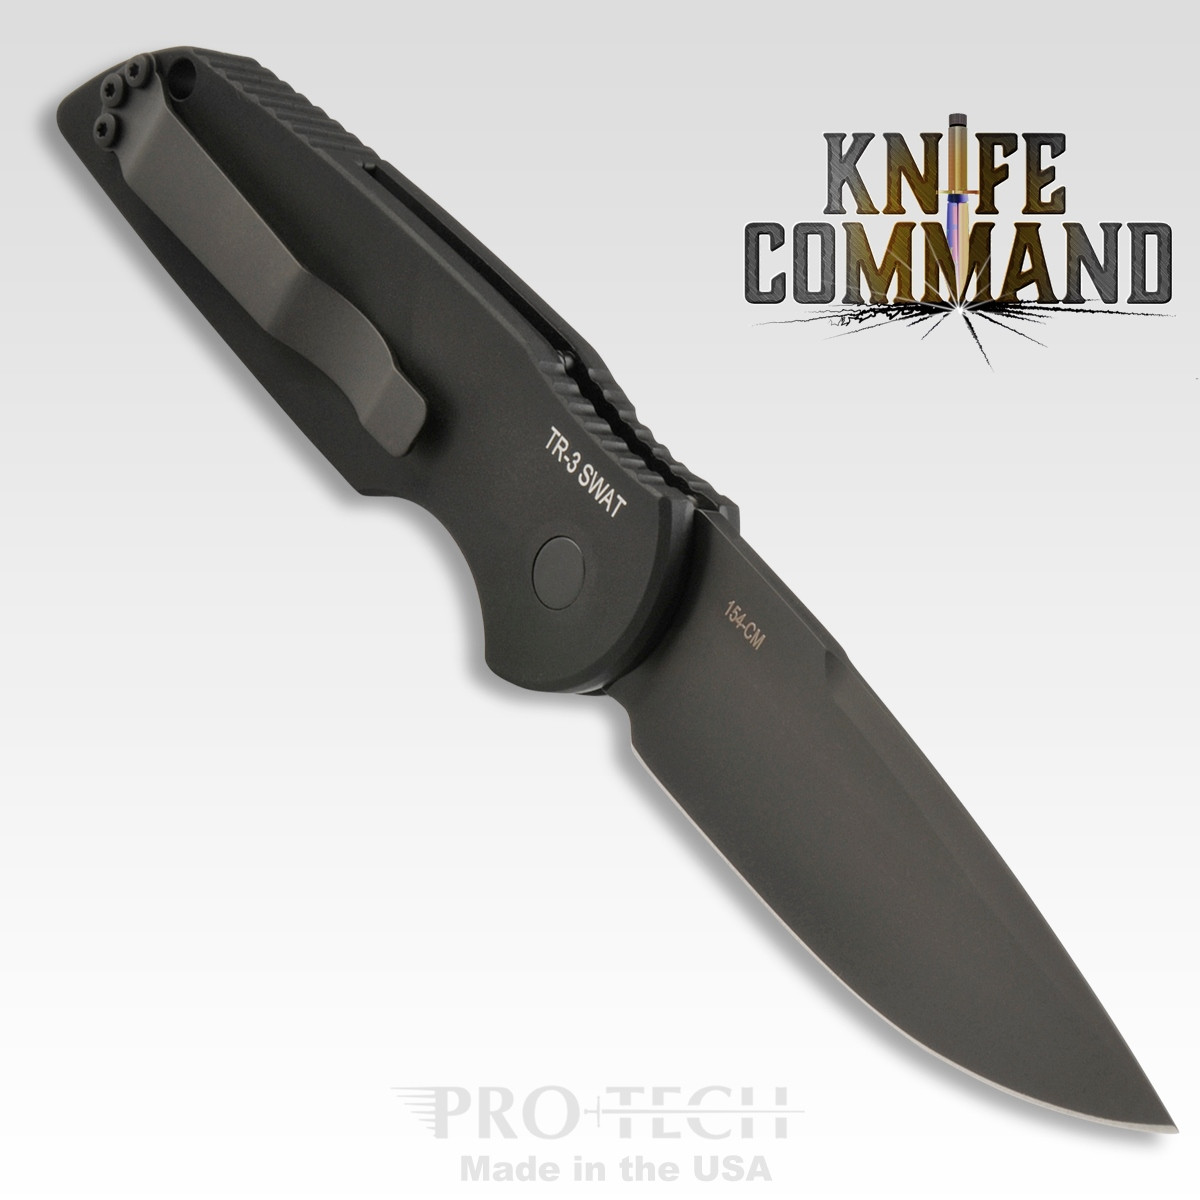 "Pro-Tech Knives Tactical Response TR-3 SWAT Automatic Knife Police Law Enforcement Folder 3.5"" Black DLC Blade"